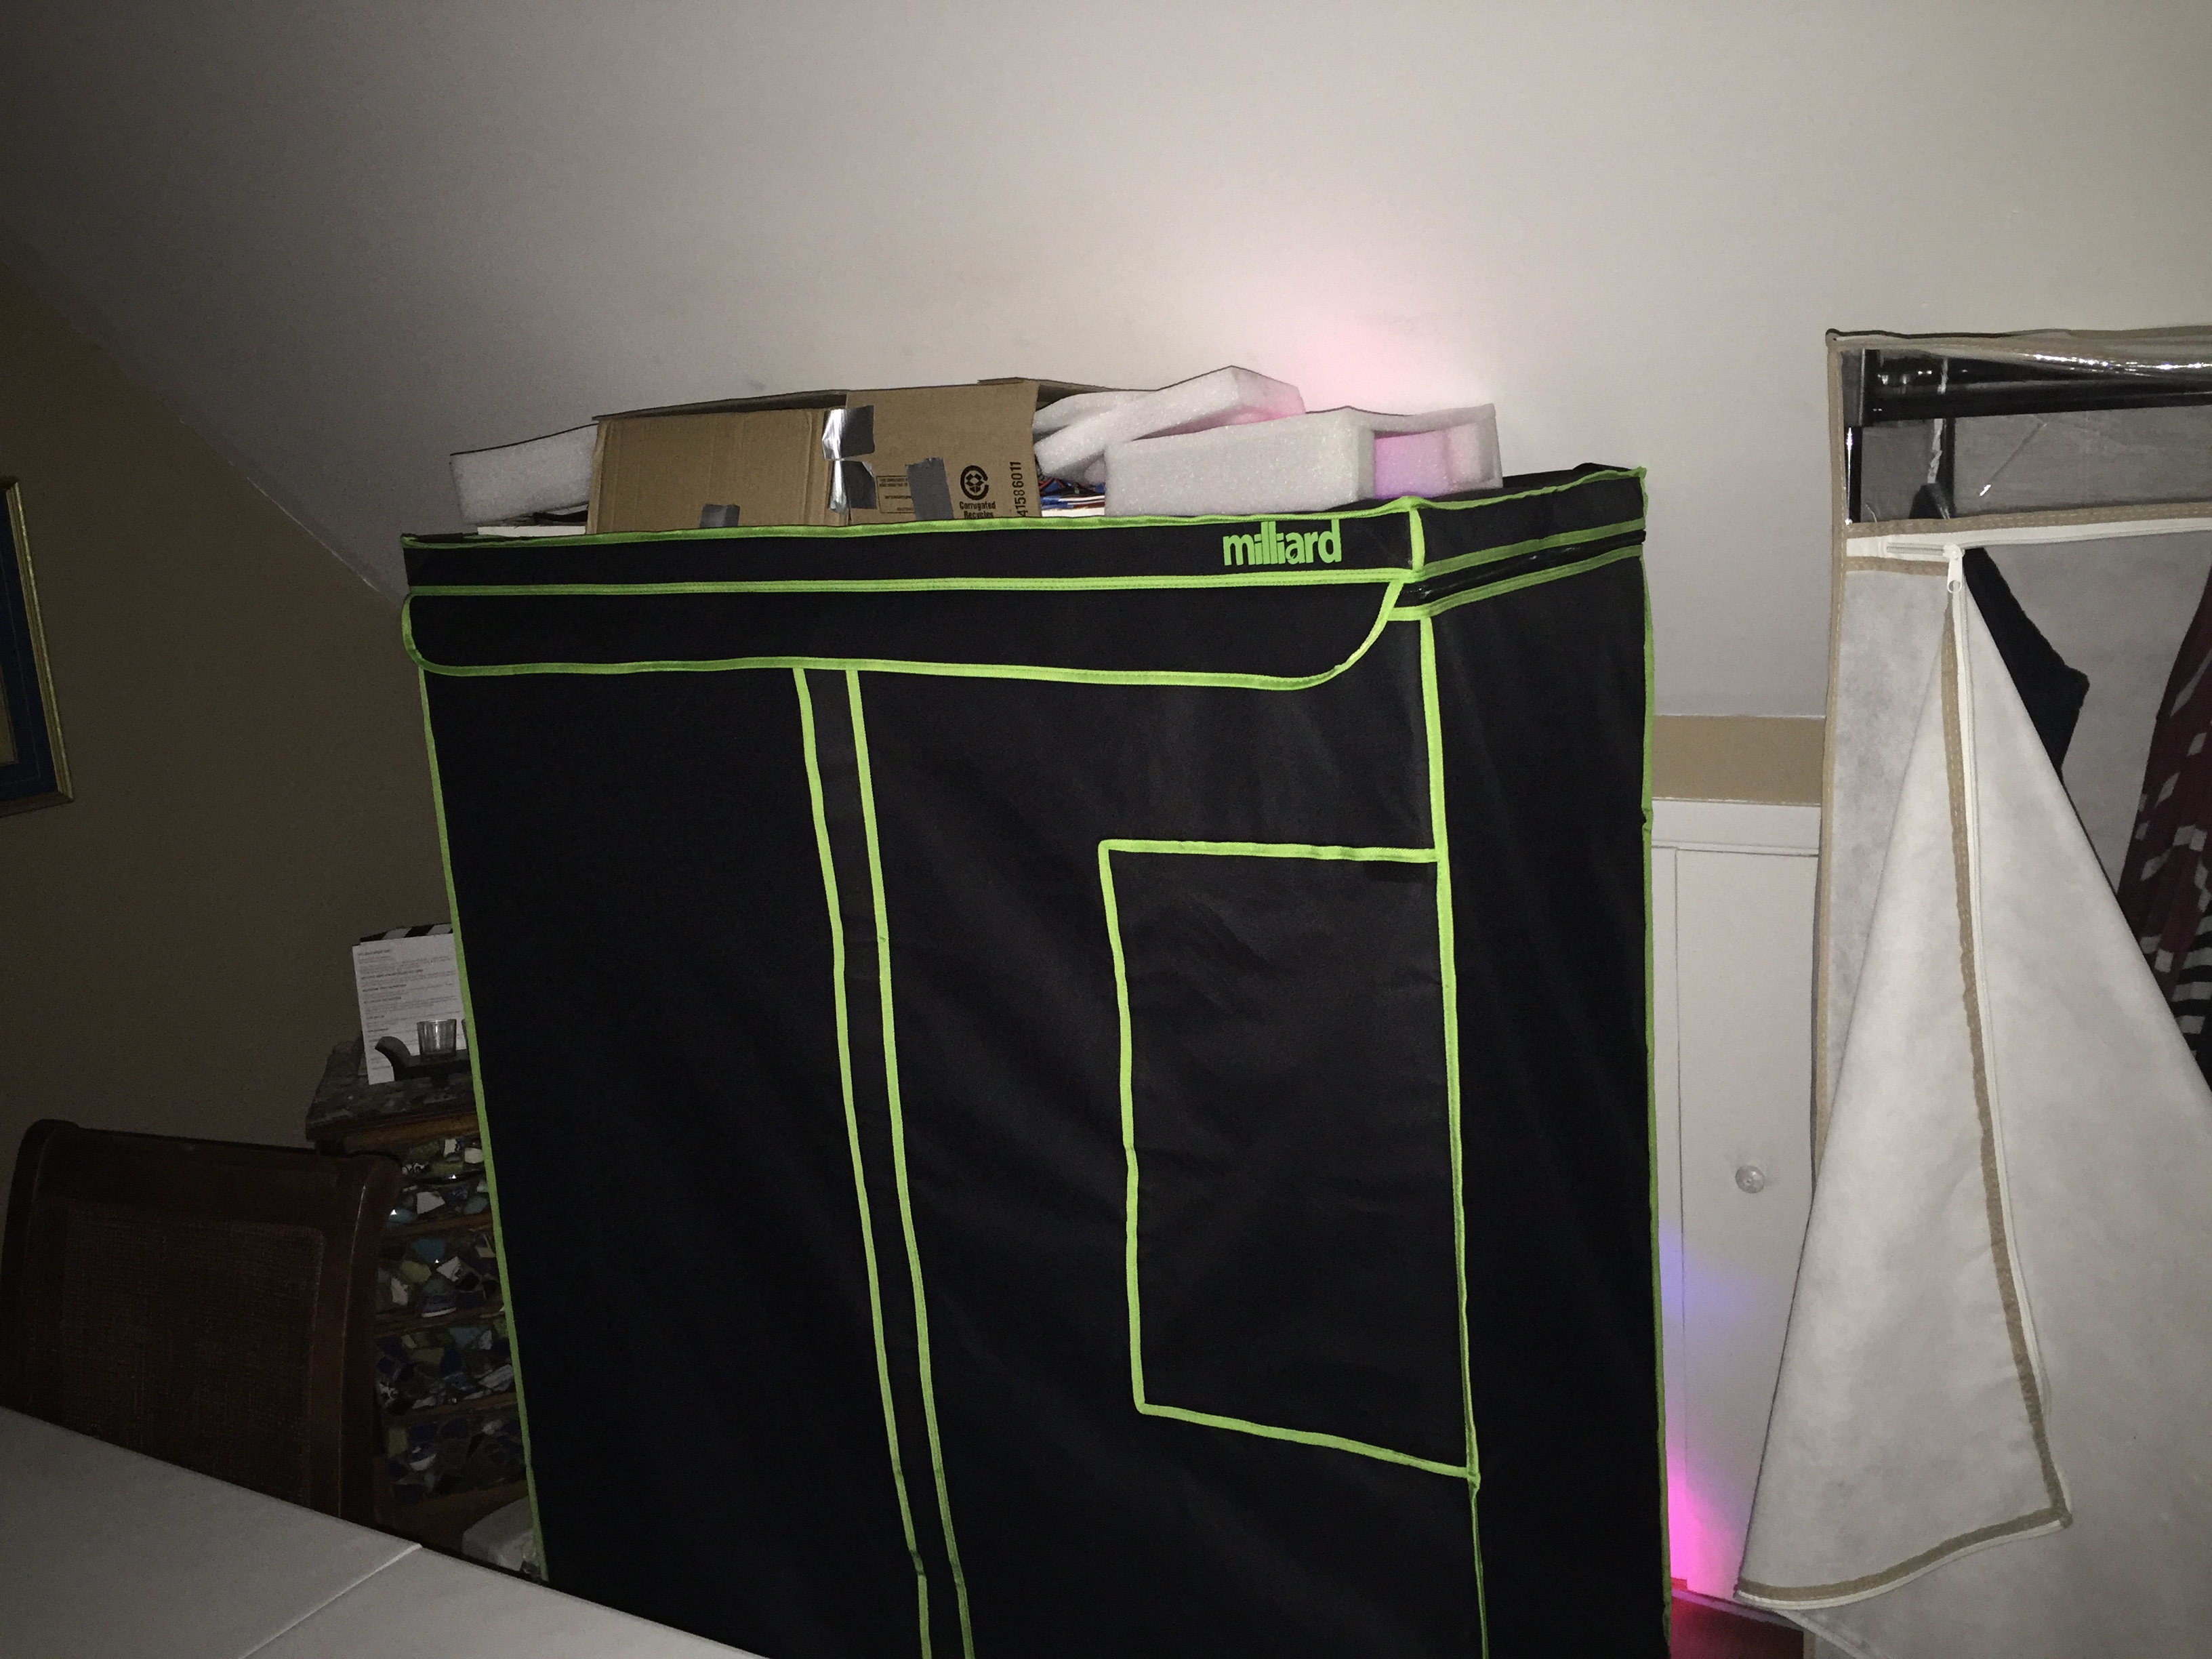 Covered the top with foam and put the wires in a card board box to make it look neater.